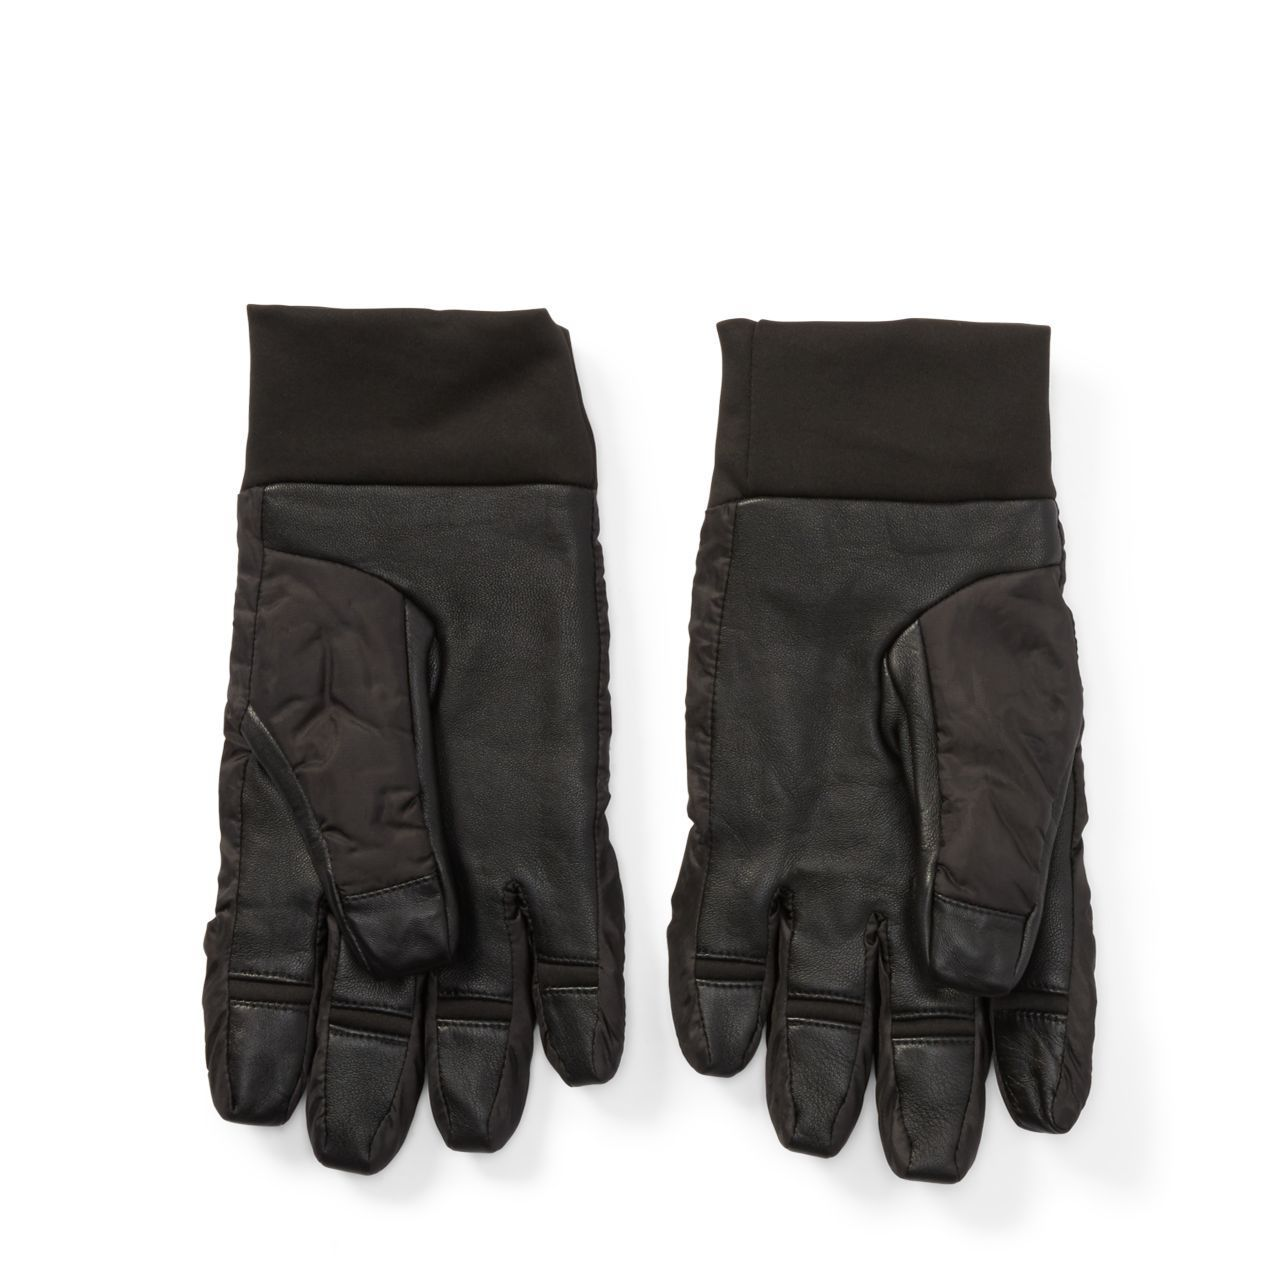 ◎送料込み◎Expedition Insulated Gloves